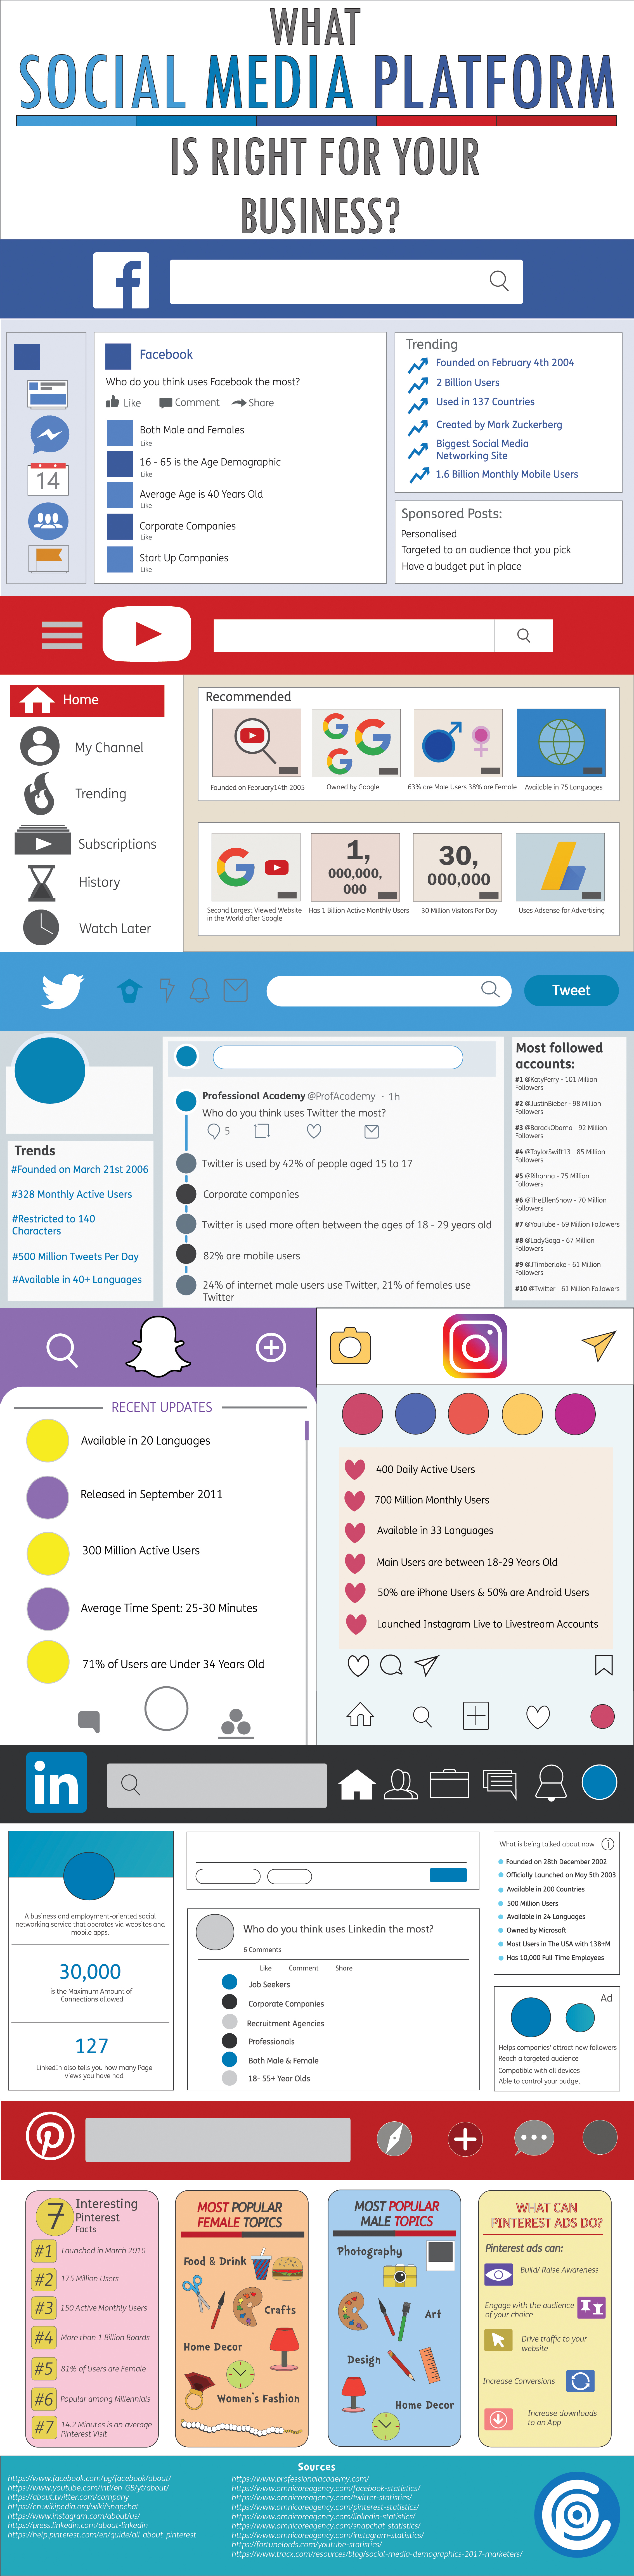 What Social Media Platform is Right for Your Business? - Infographic